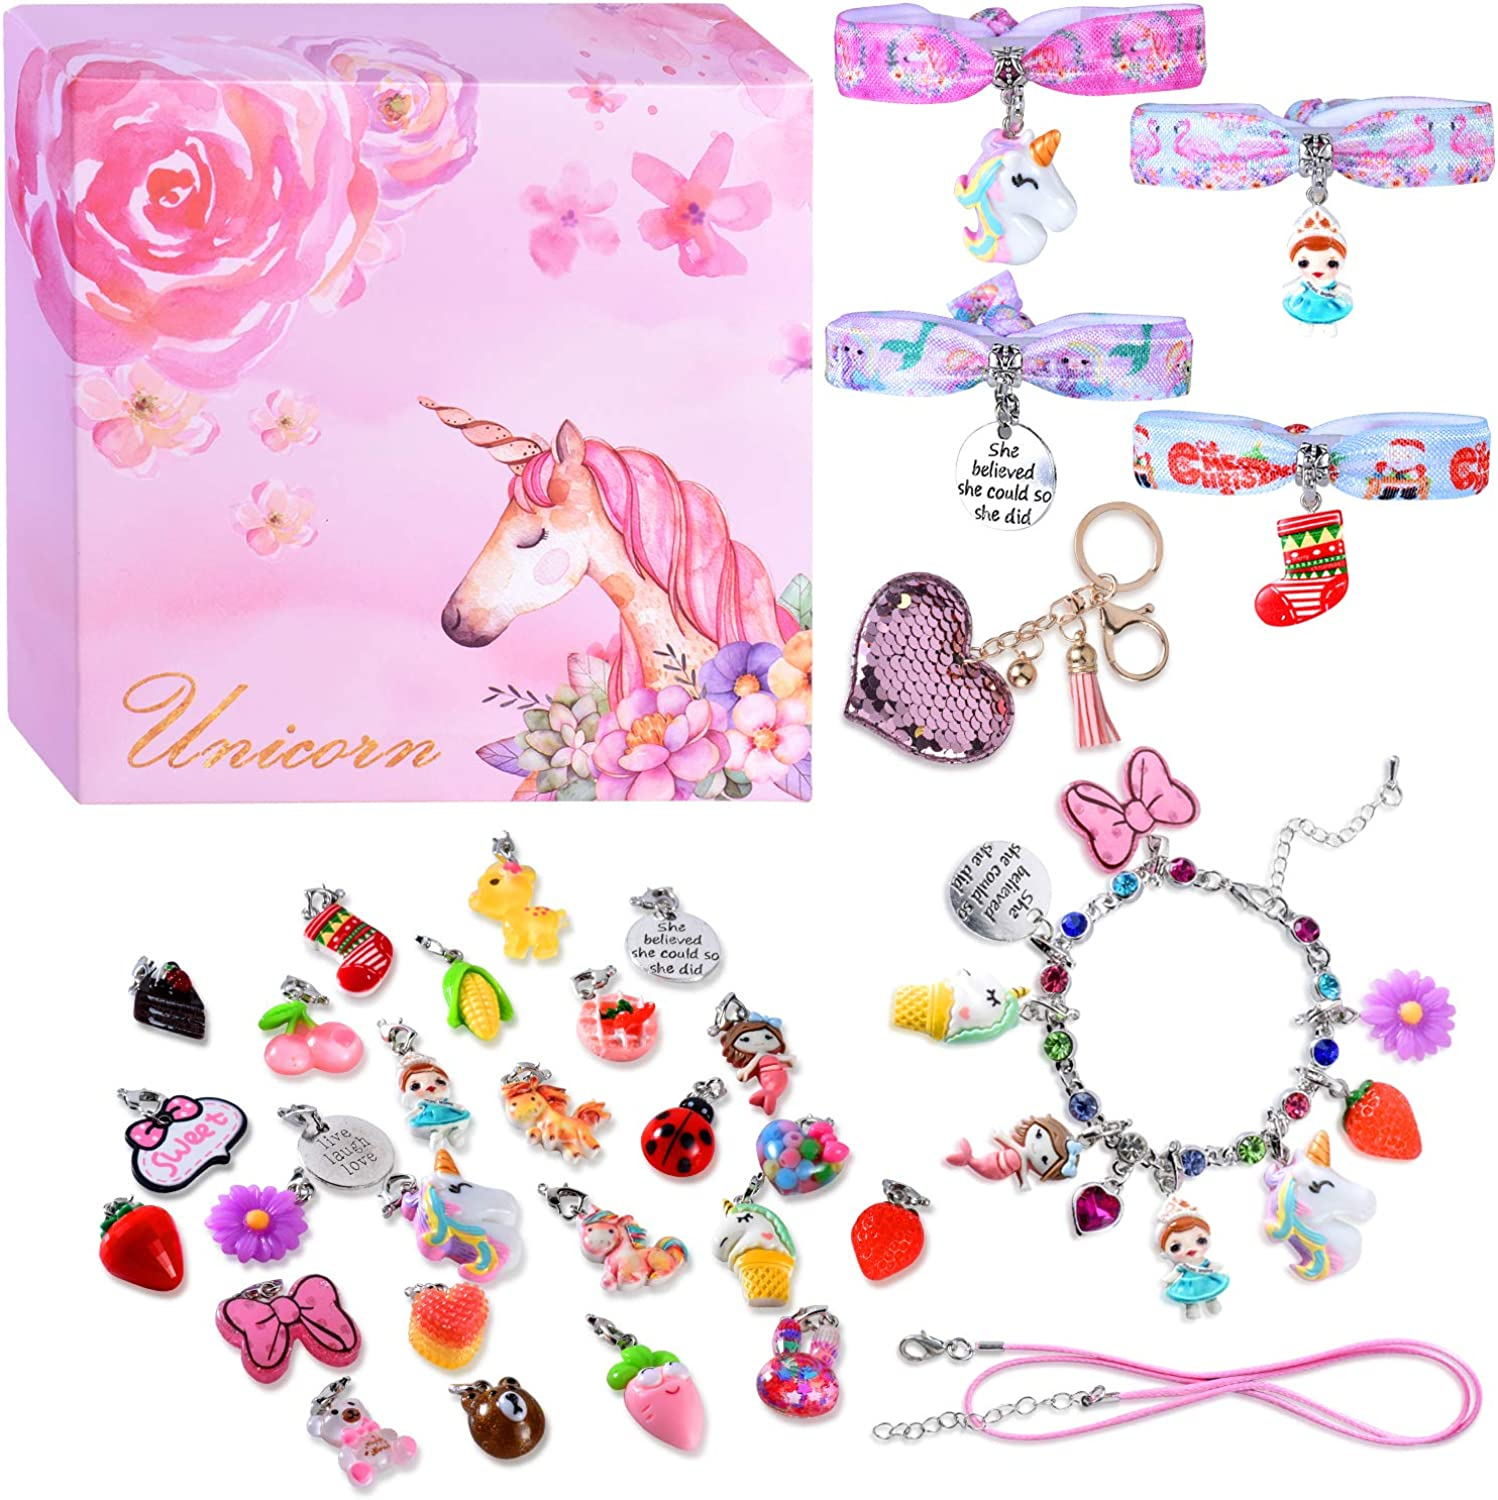 DIY Charm Bracelets for Girls, Girls Jewelry Link Chain Bracelet Necklace Keychain Hair Ties with 26 PCs Random Removable Charms for Kids Teen Girls Women